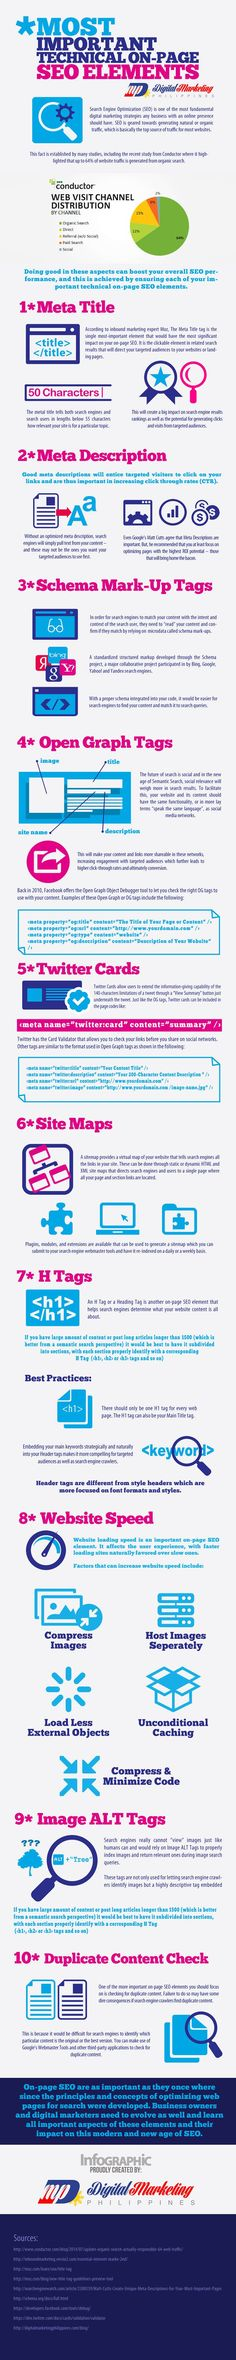 Core Elements of Effective Search Engine Optimization [INFOGRAPHIC]